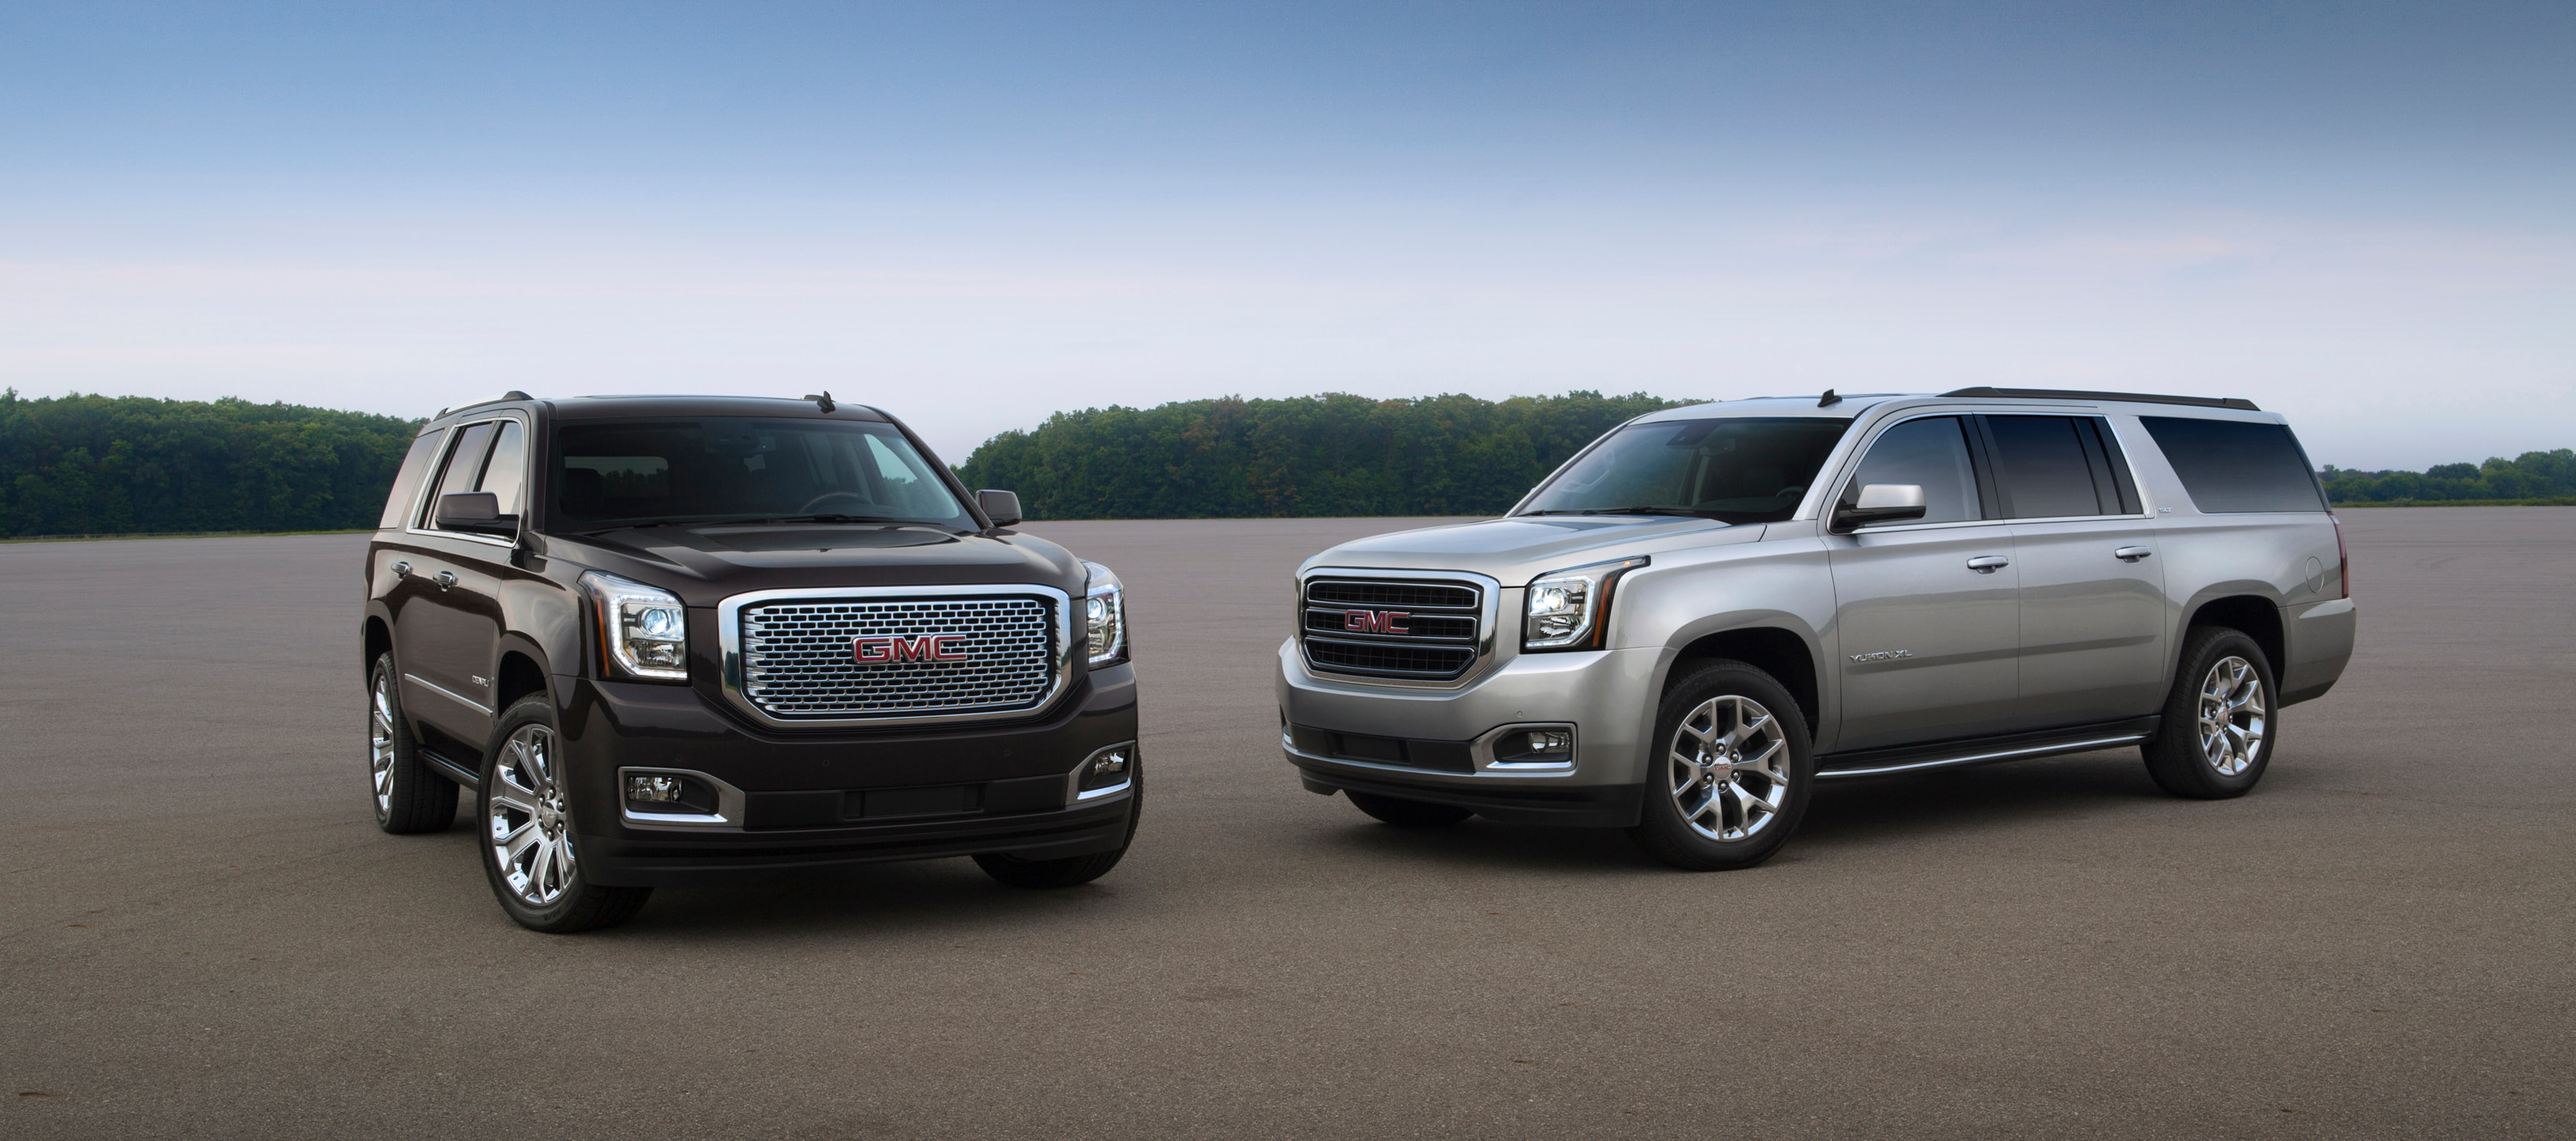 2016 GMC YUKON XL / YUKON XL DENALI SPECIFICATIONS